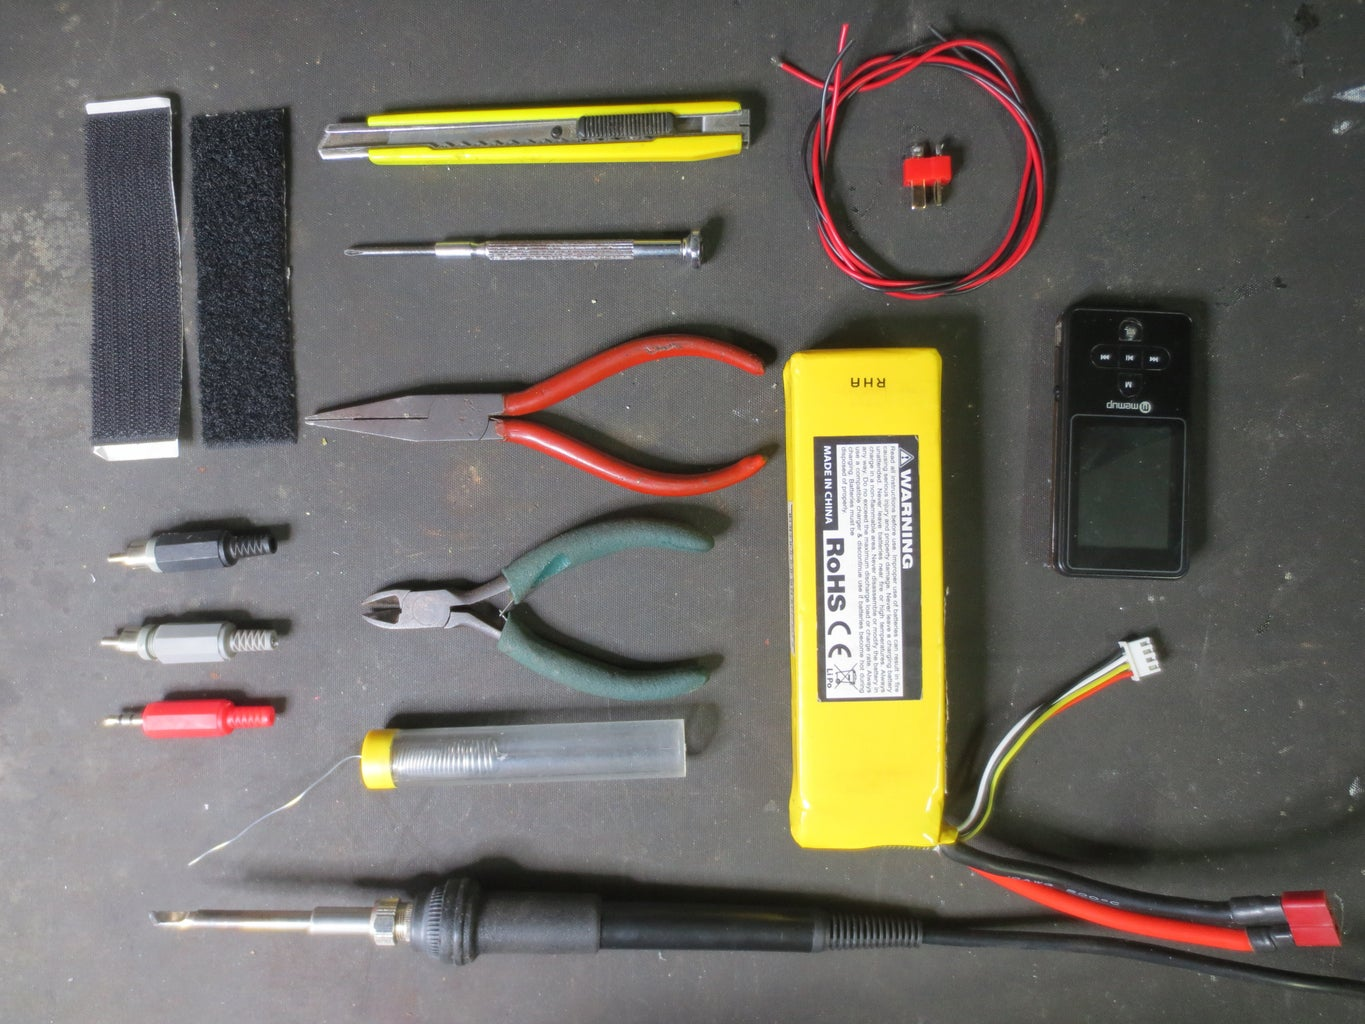 Getting the Parts and Tools